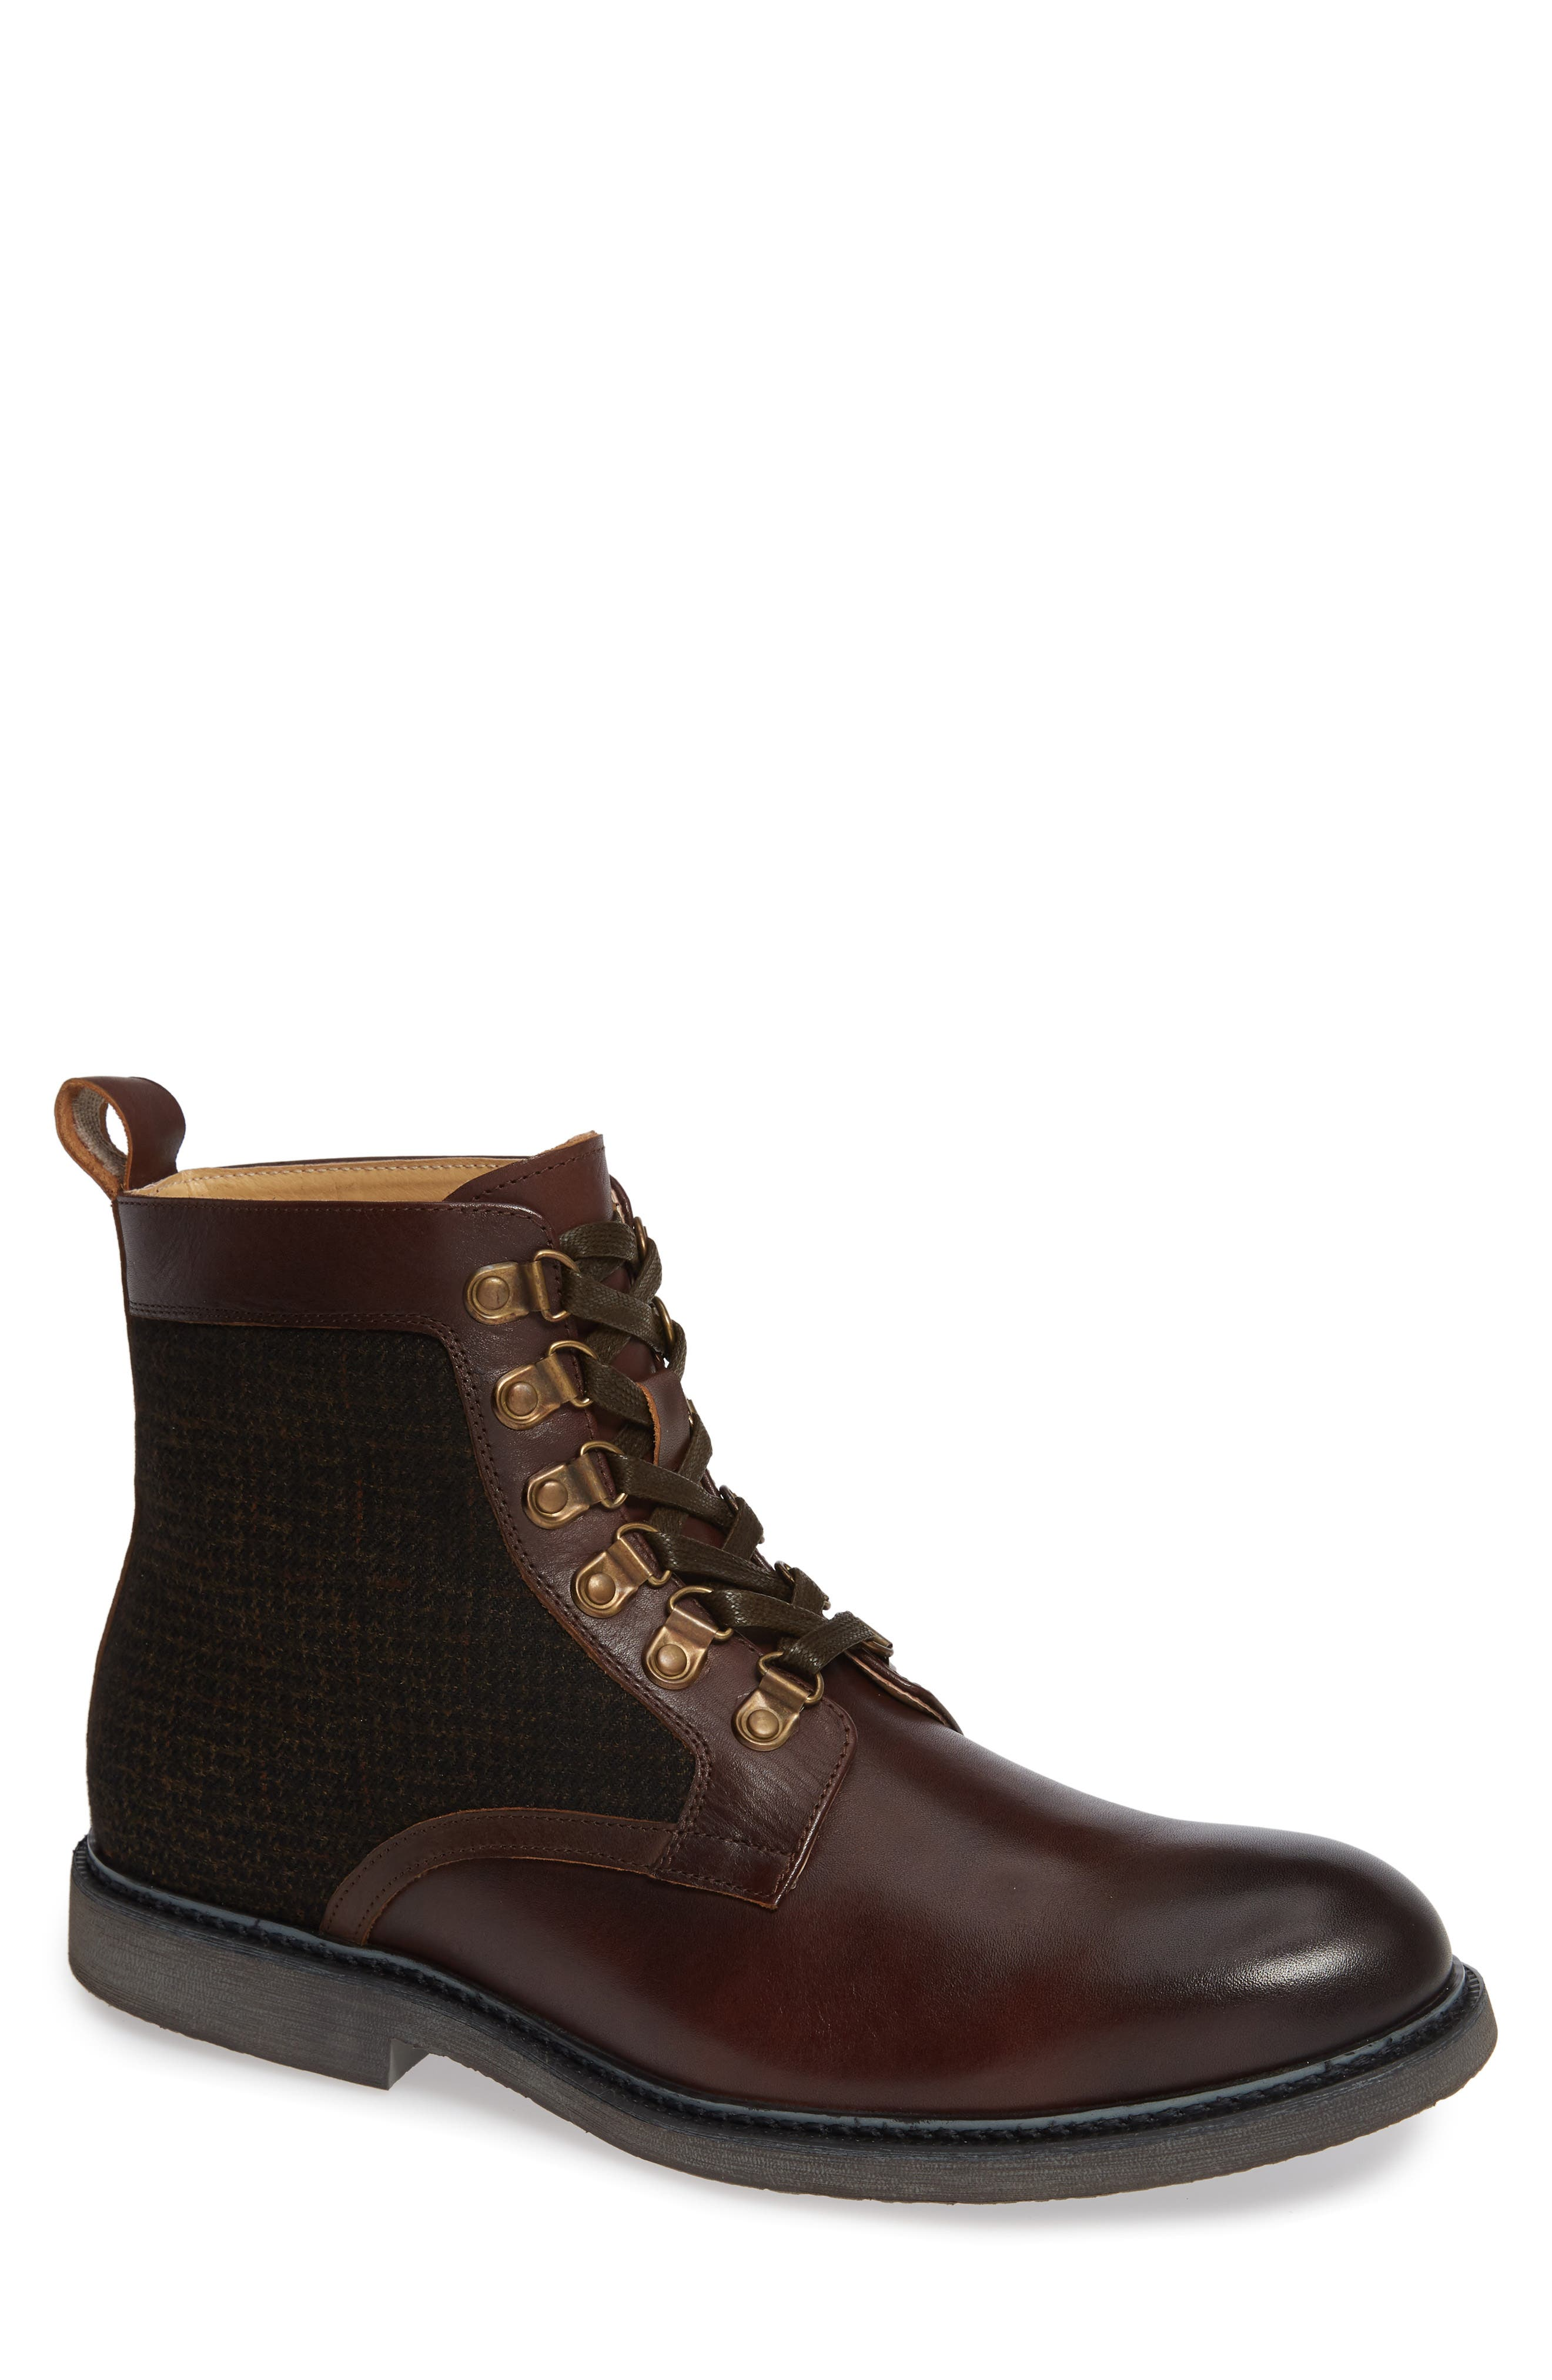 ENGLISH LAUNDRY Bradford Textured Suede Boot in Brown